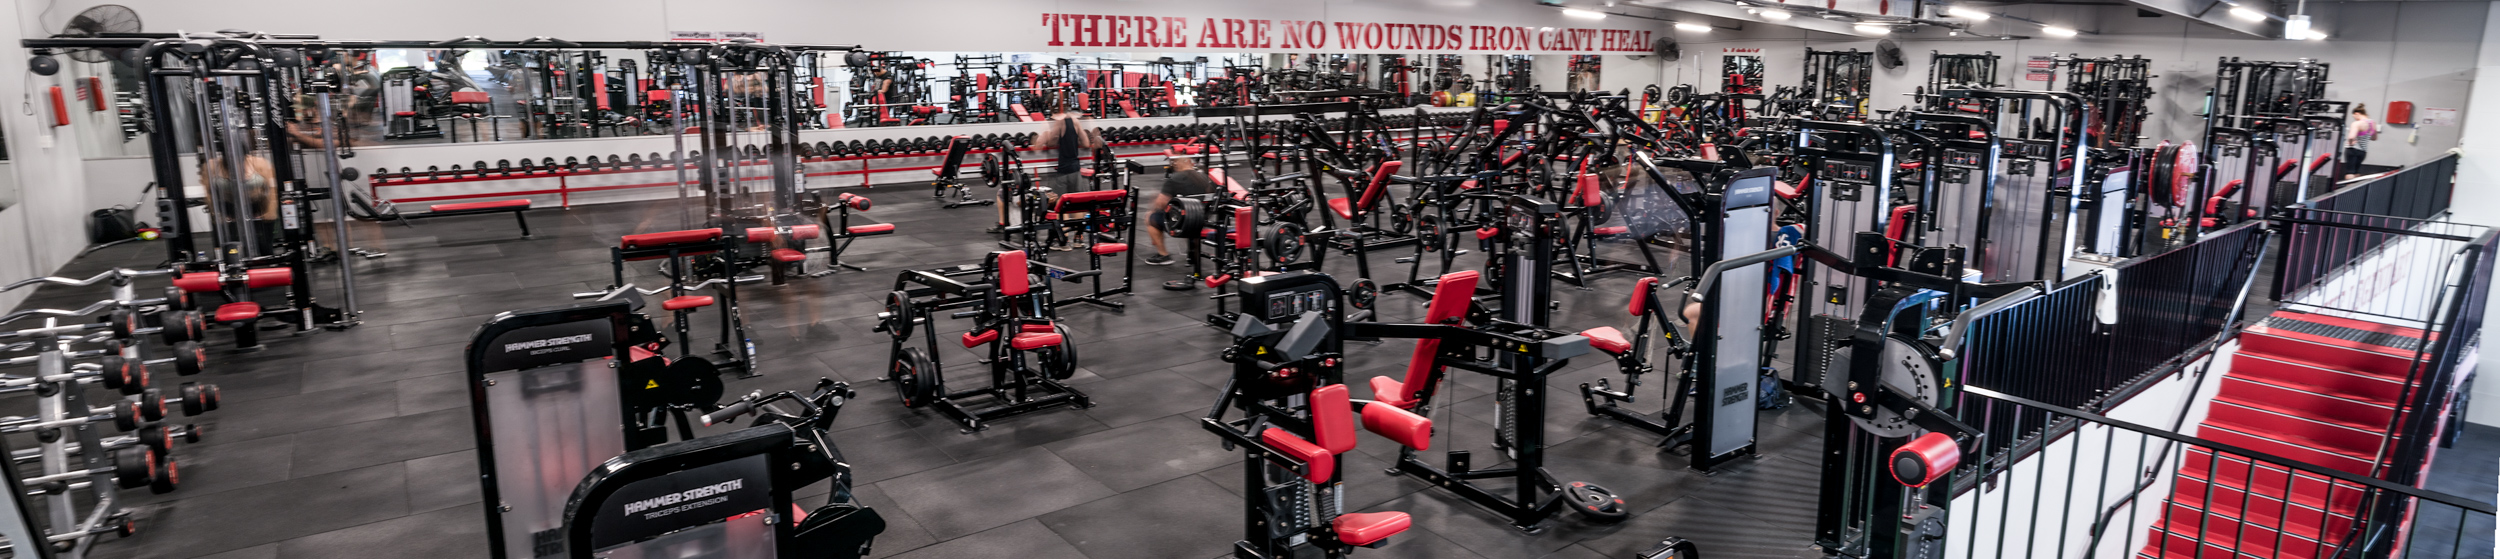 North Lakes Sports Club Jobs Gym Fitness Centre In North Lakes World Gym North Lakes